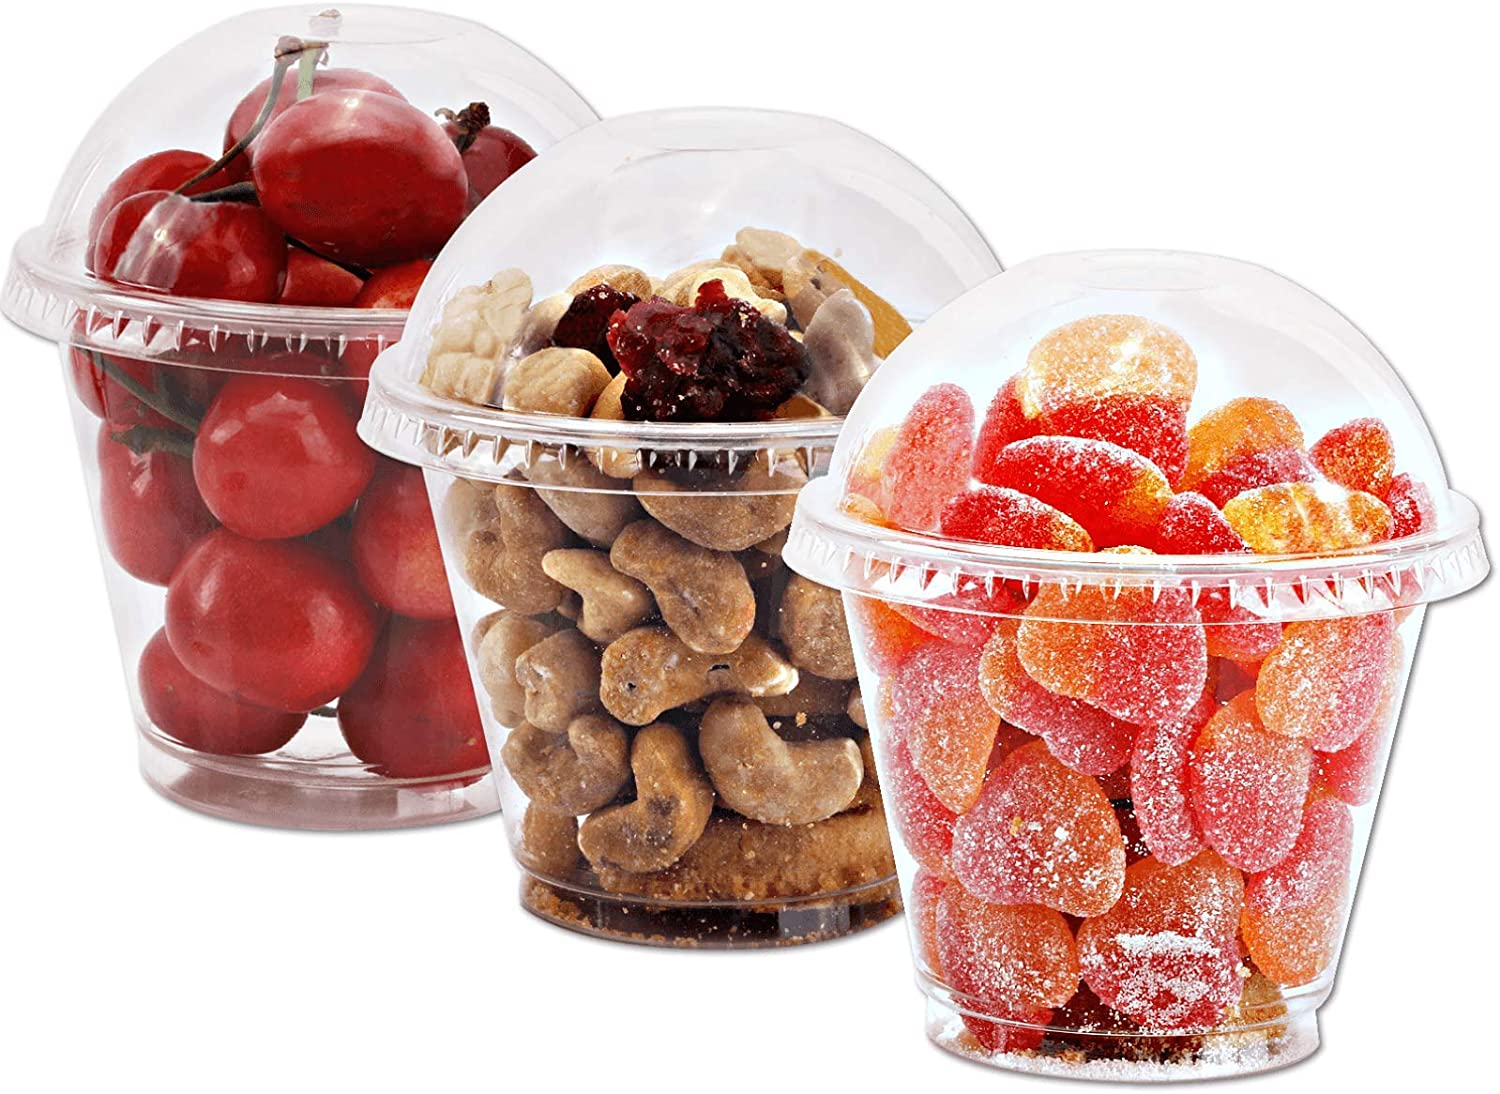 9 oz Clear Plastic Cups with Lids - 25 Sets Dessert Cups with Dome Lids (NO HOLE), Crystal PET Parfait Cups with Lids, Disposable Party Cups for Fruit/Ice Cream/Cupcake/Iced Cold Drinks